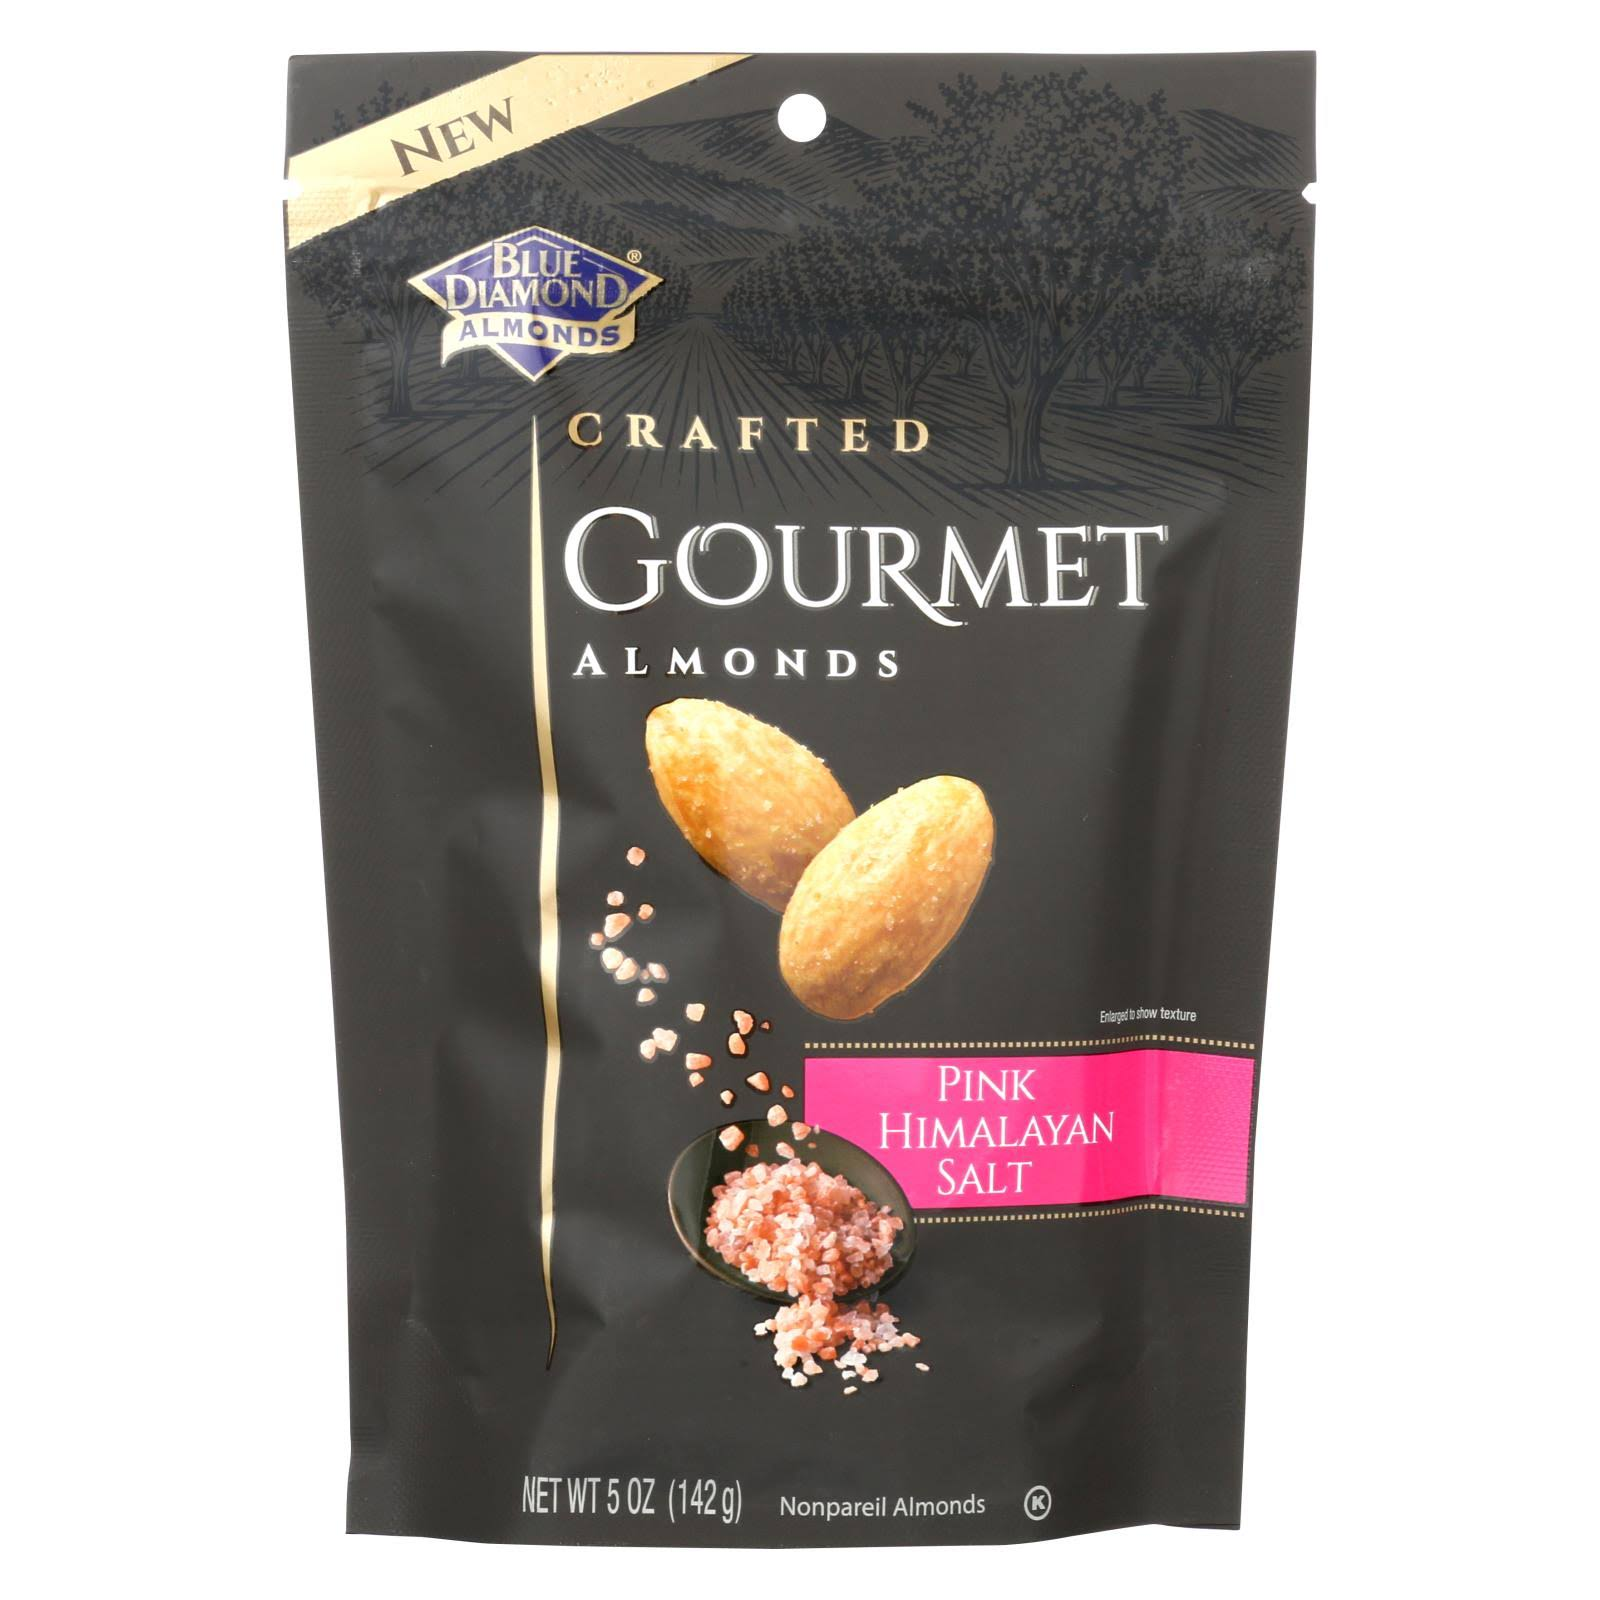 Blue Diamond Crafted Gourmet Almonds, Pink Himalayan Salt - 5 oz bag